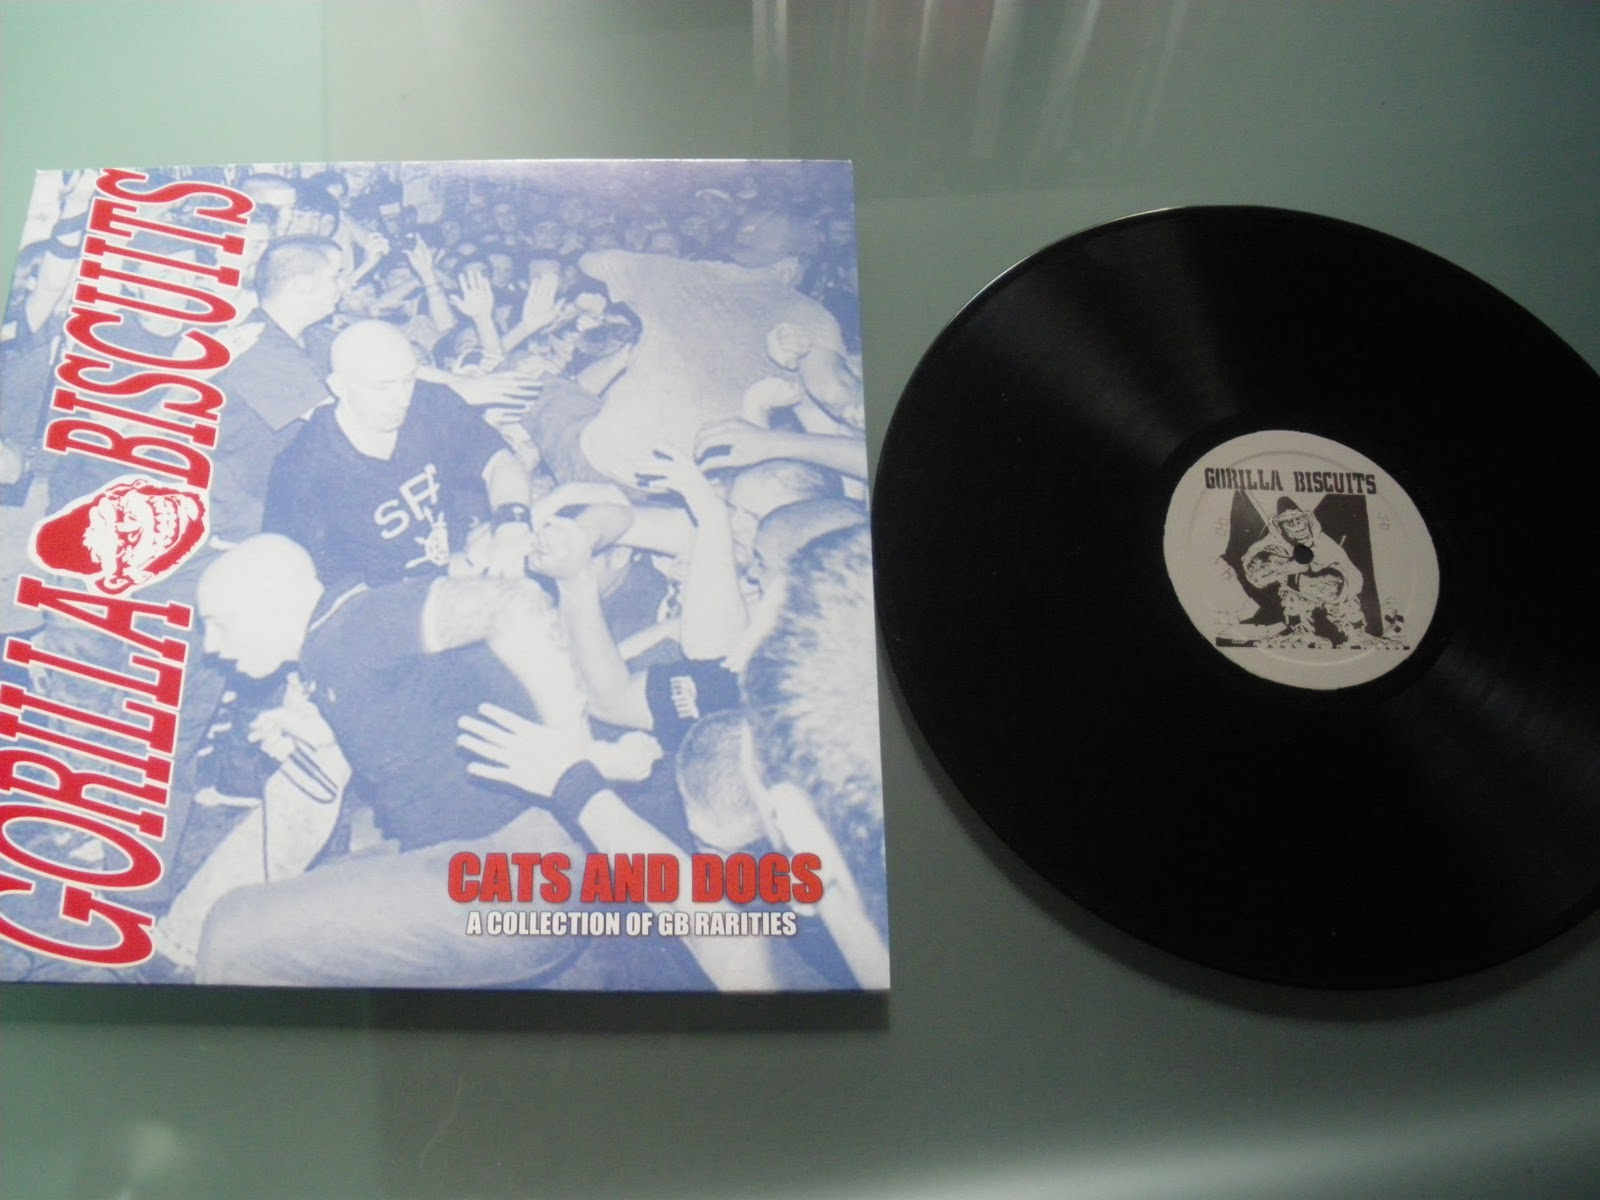 Gorilla Biscuits Cats And Dogs